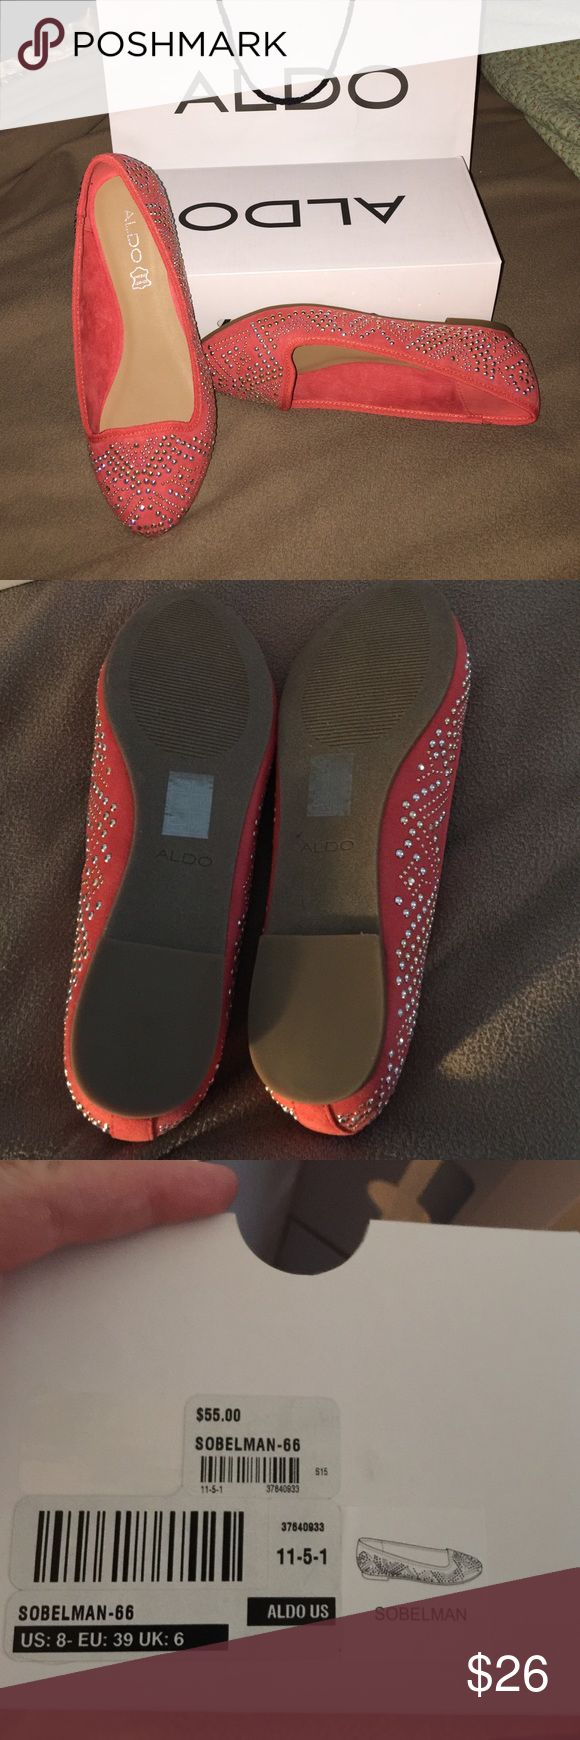 Exquisite silver studded designs on coral flats! Brand-new coral Aldo flats.  Beautiful silver studded designs.  Extra silver beads included with the box, bag, and tags. Aldo Shoes Flats & Loafers